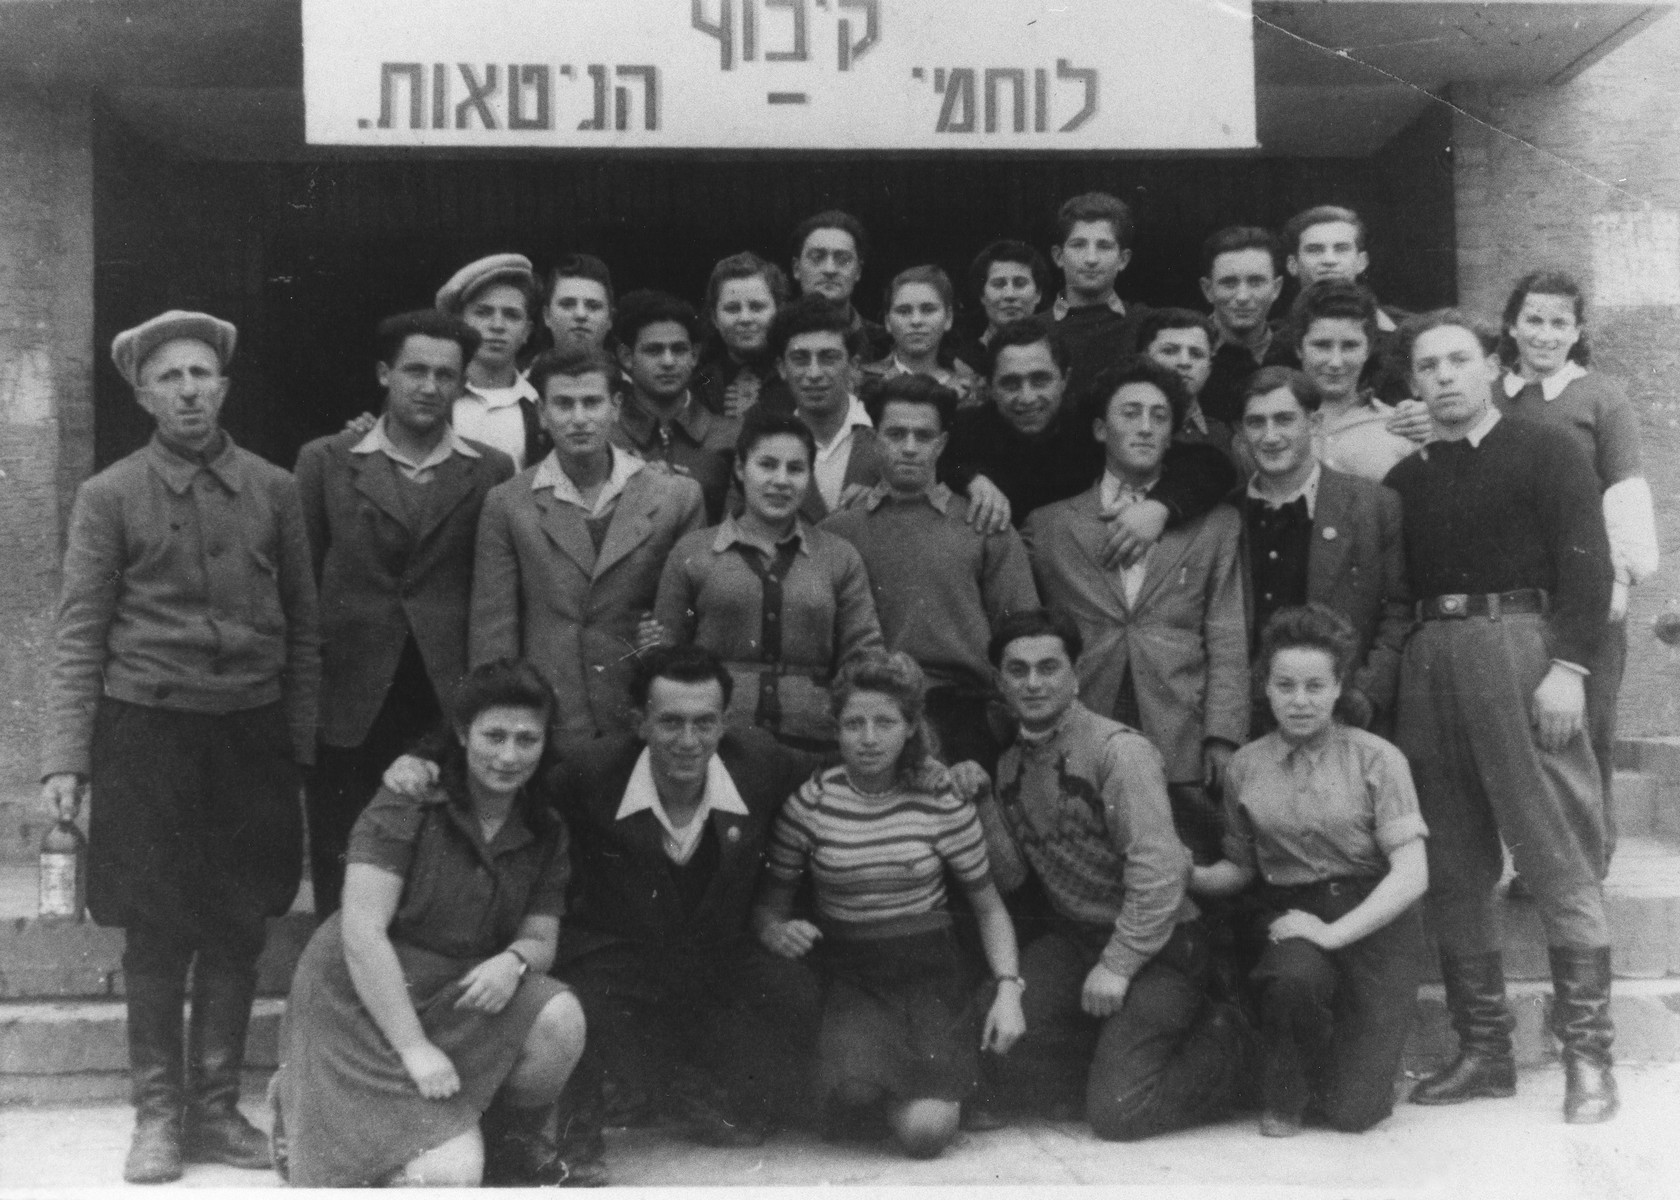 Group portrait of members of the Ghetto Fighters kibbutz hachshara [Zionist collective] at the Eschwege displaced persons camp.